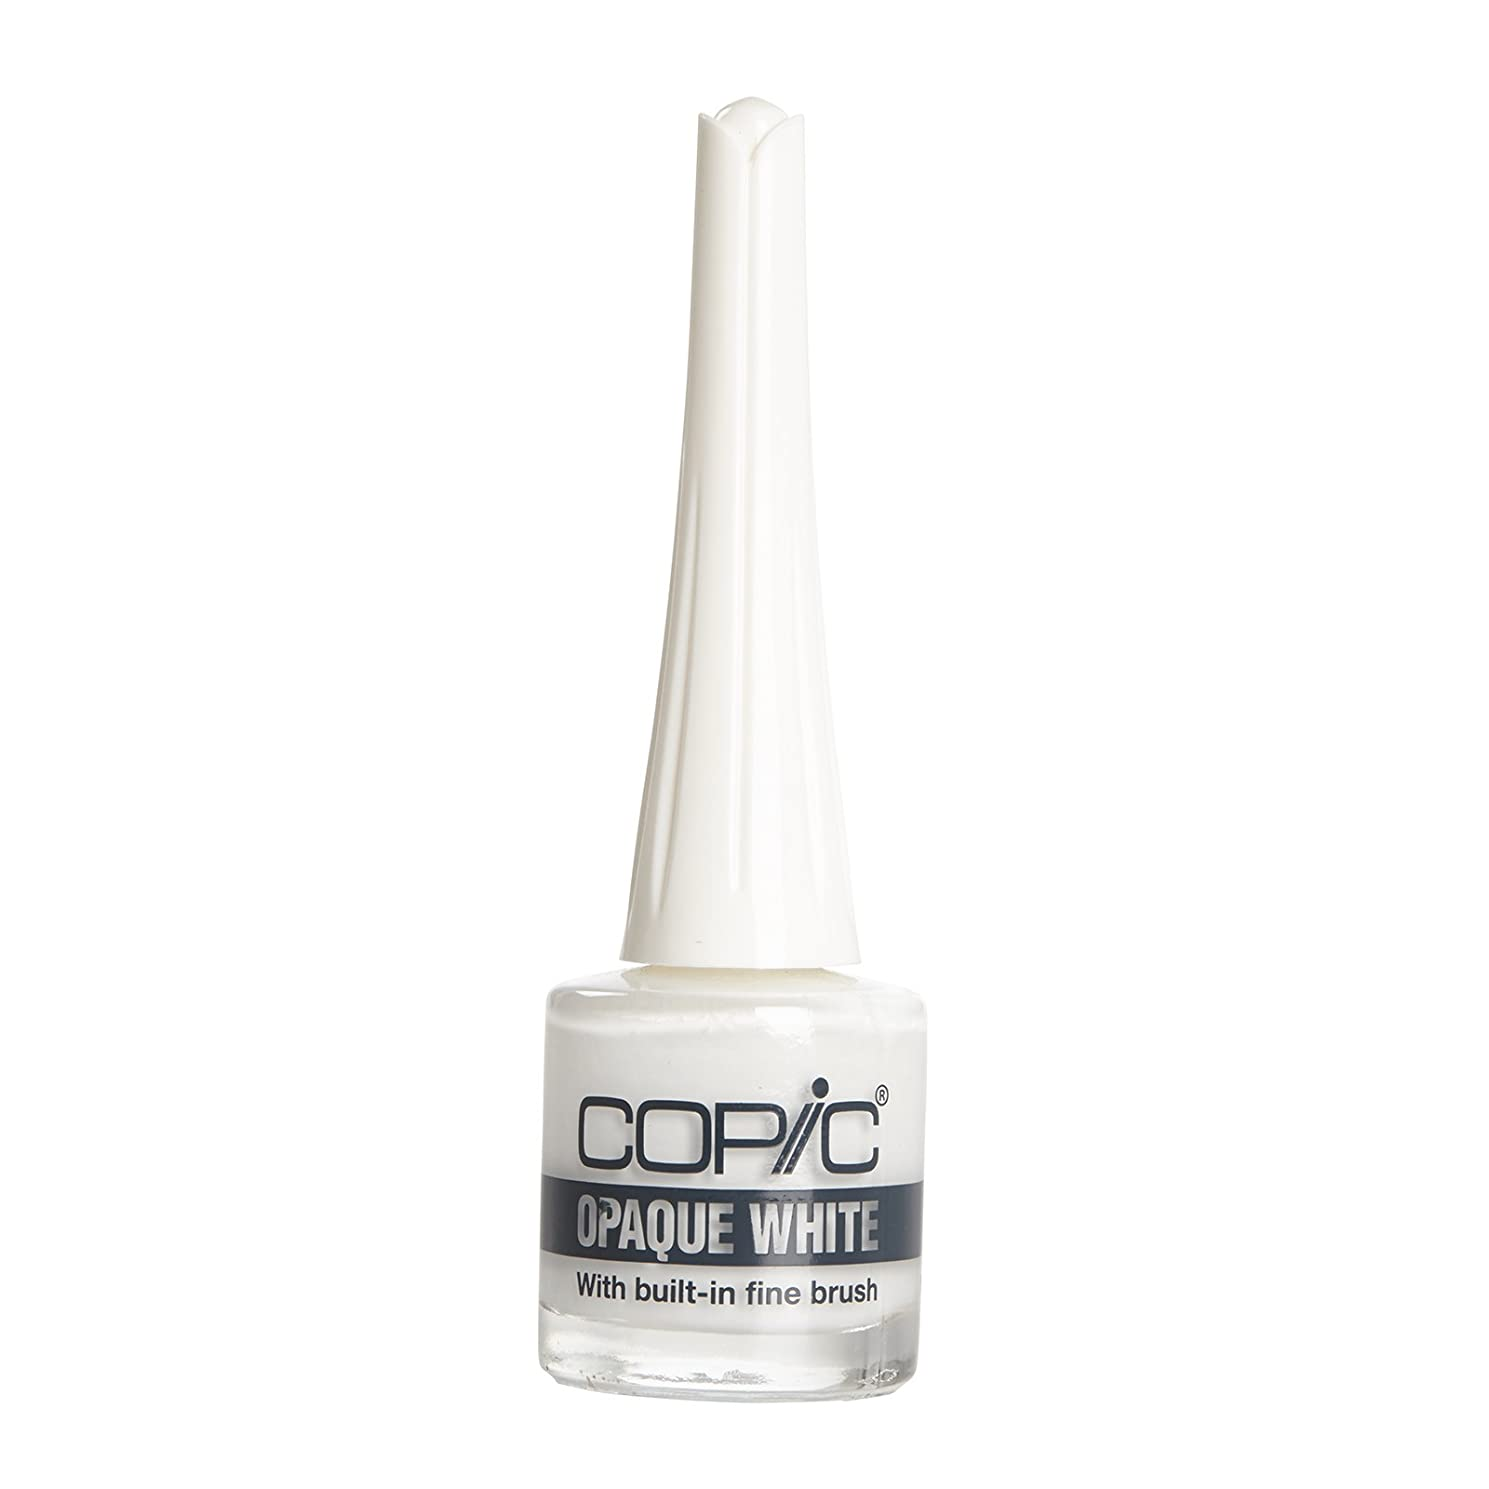 Copic Marker Opaque Water-Based Paint with Brush, 7 ml, White (COPQBRSH)